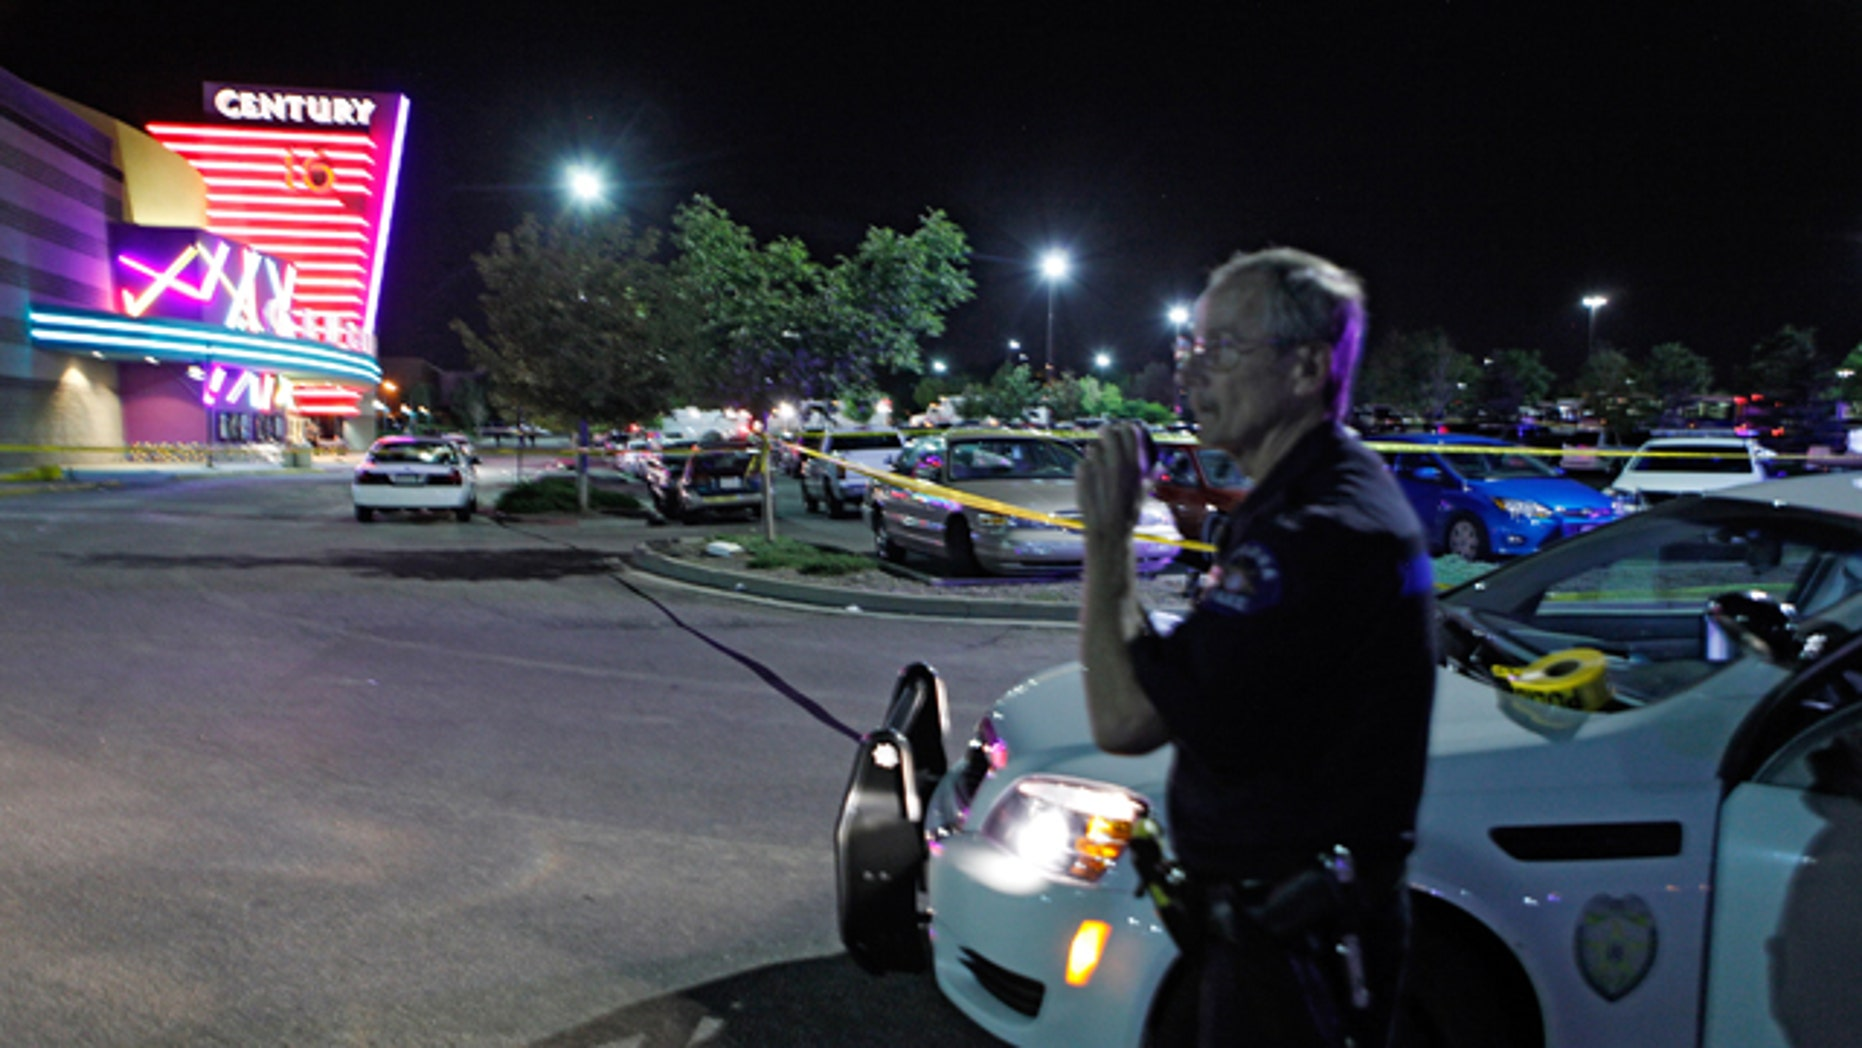 Friday, July 20, 2012: An Aurora Police officer talks on his radio outside of the Century 16 theater where as many as 14 people were killed and many injured during a shooting in Aurora, Colo. (AP Photo/Ed Andrieski)